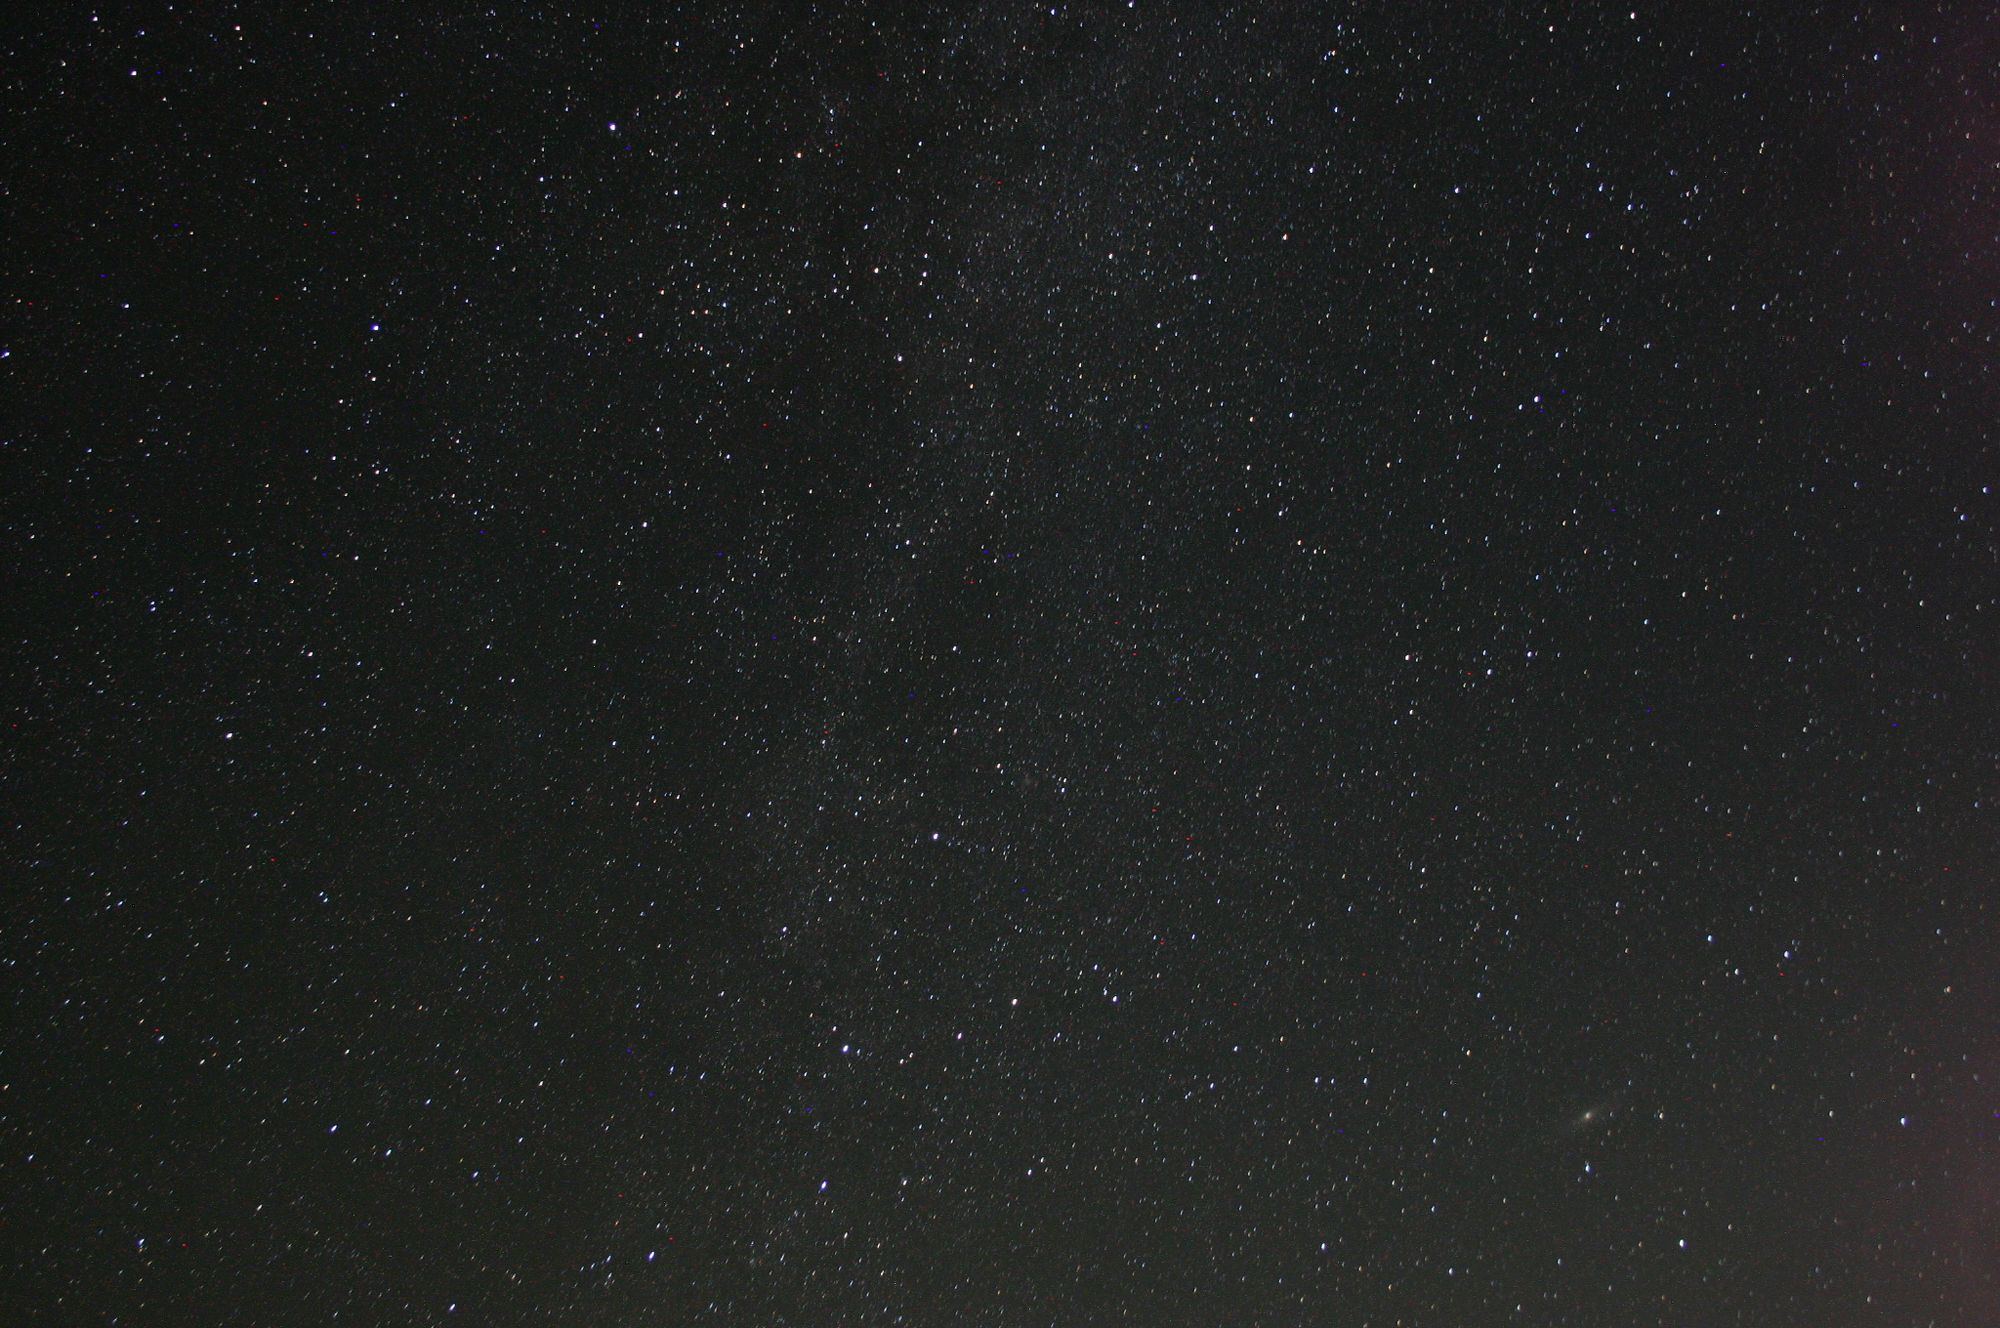 Northern Milky Way with M31 in the corner